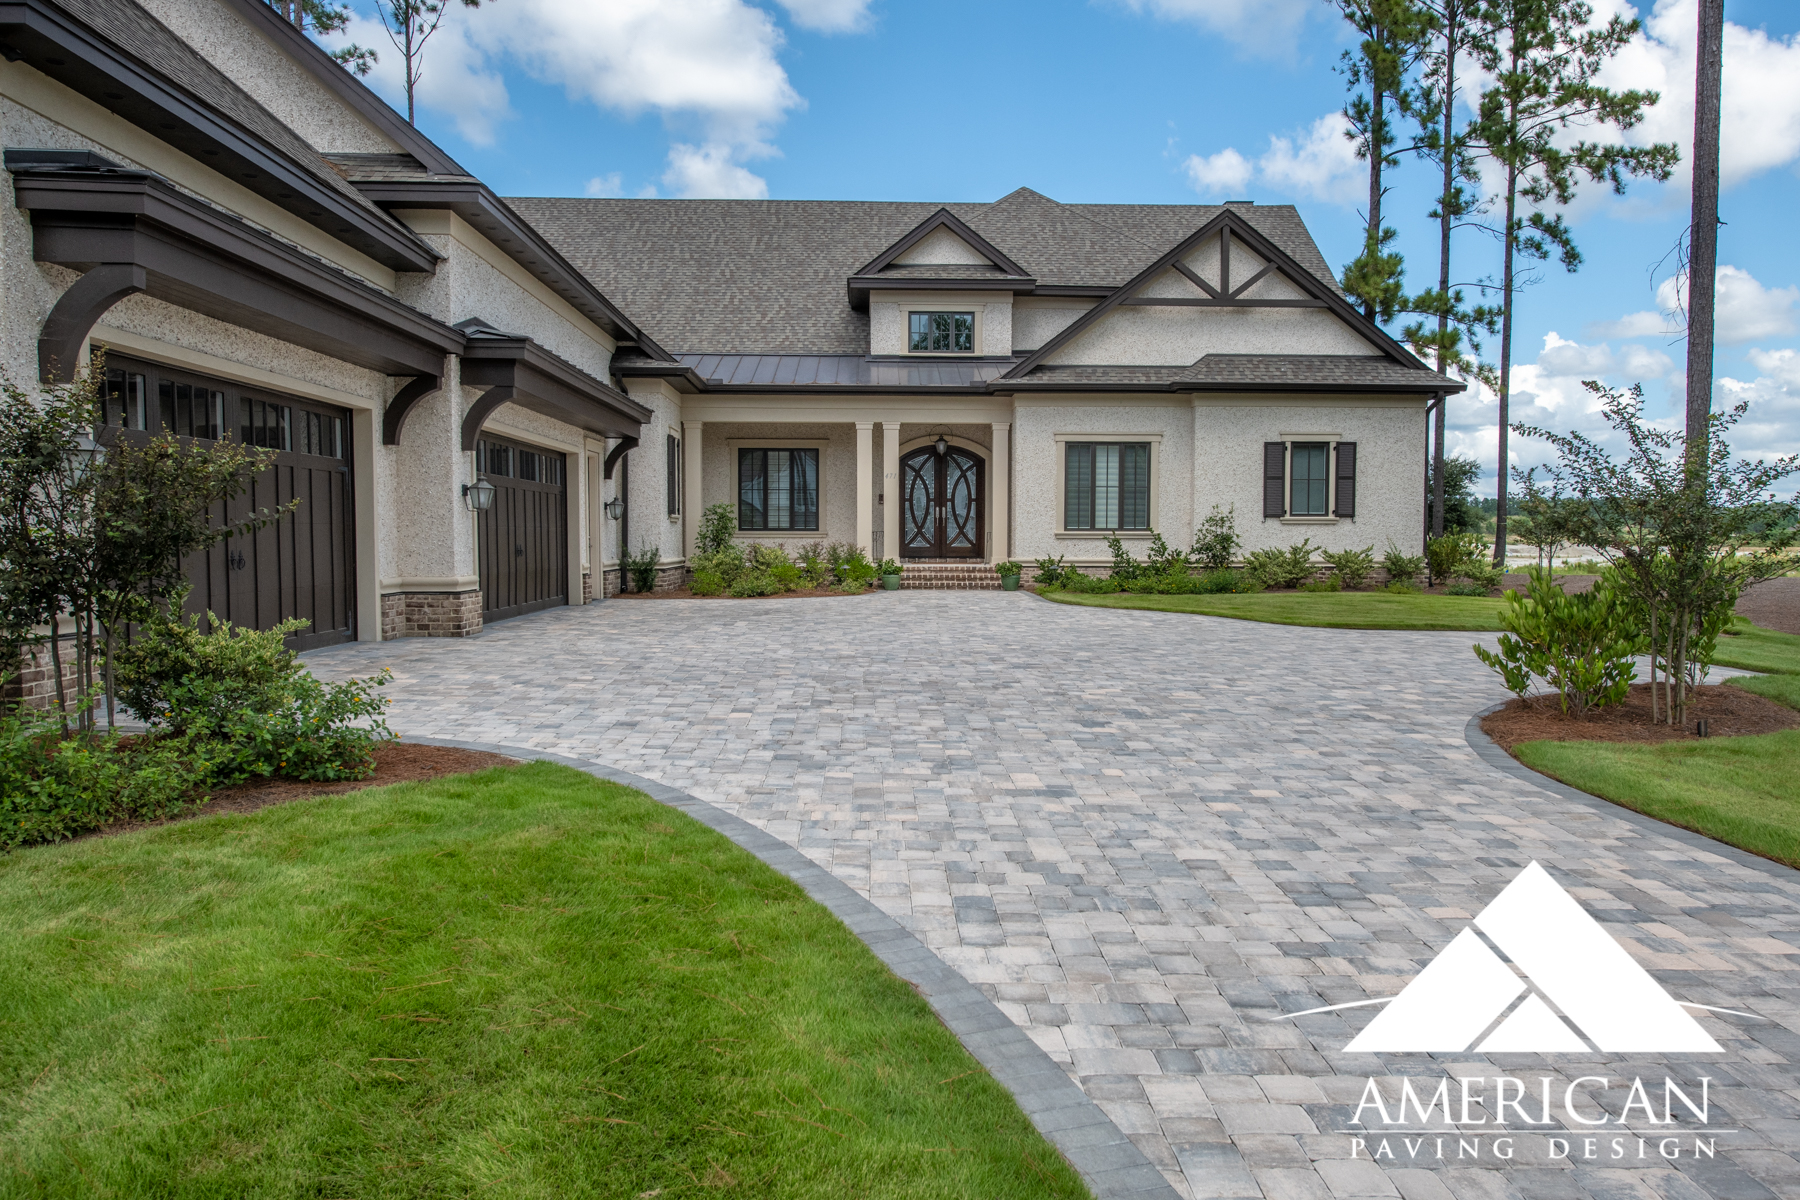 VIEW MORE PAVER DRIVEWAY INSTALLATIONS